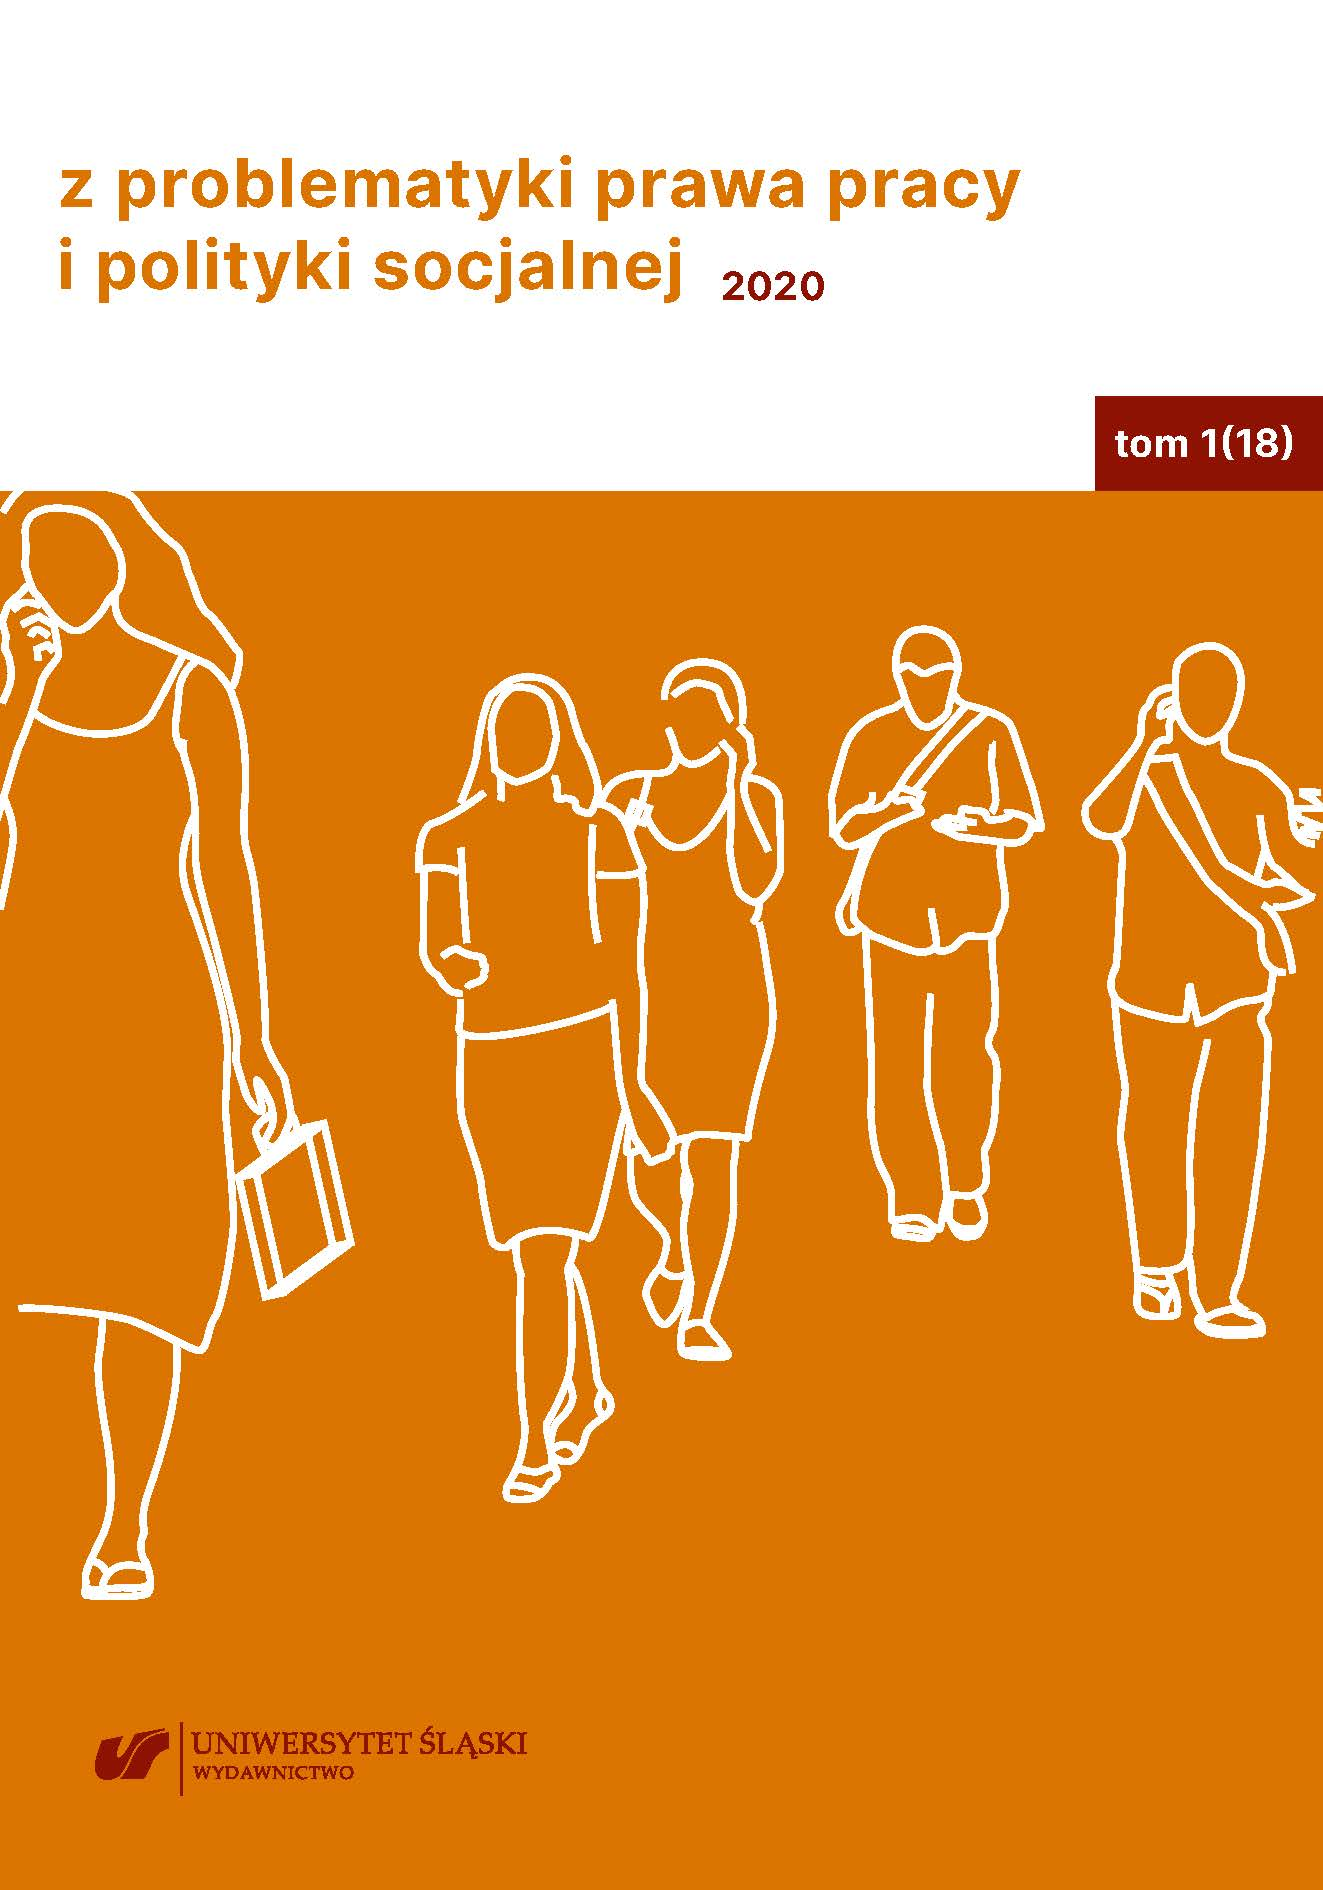 ZPPPiS cover 1